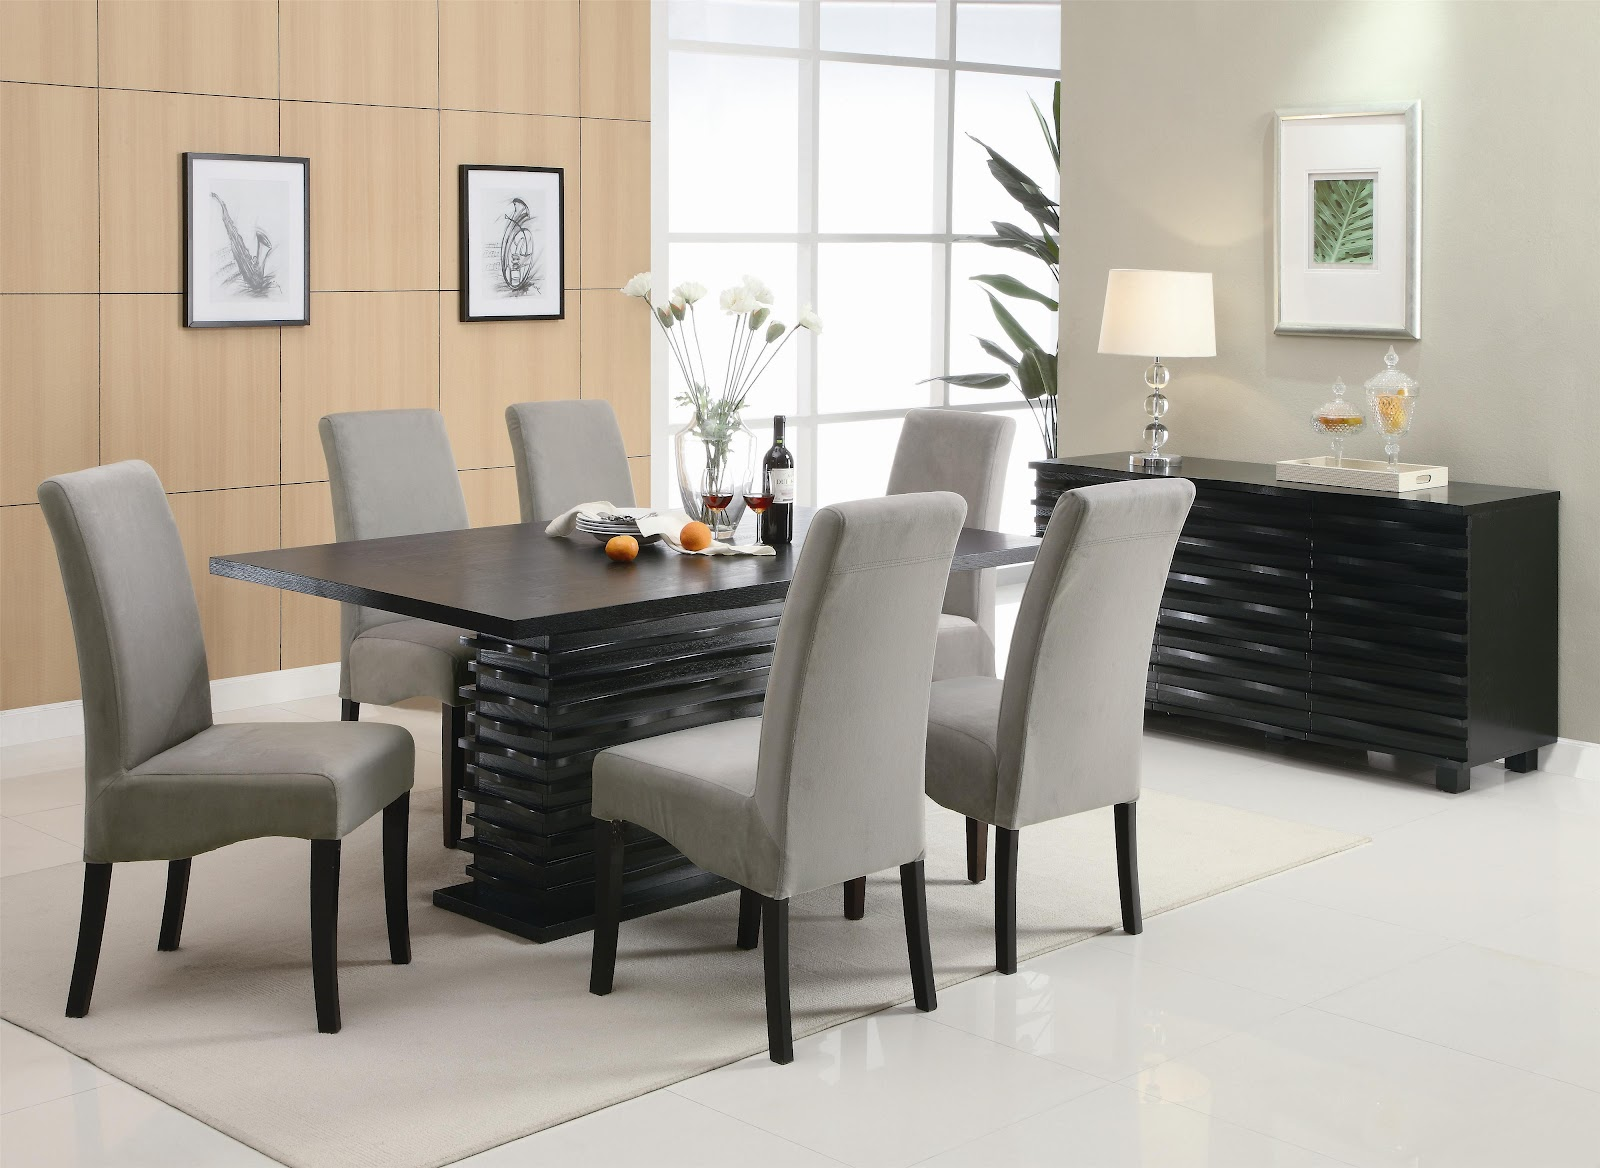 Dining Room Furniture Long Island | DINING ROOM,UNIQUE DINETTE ...